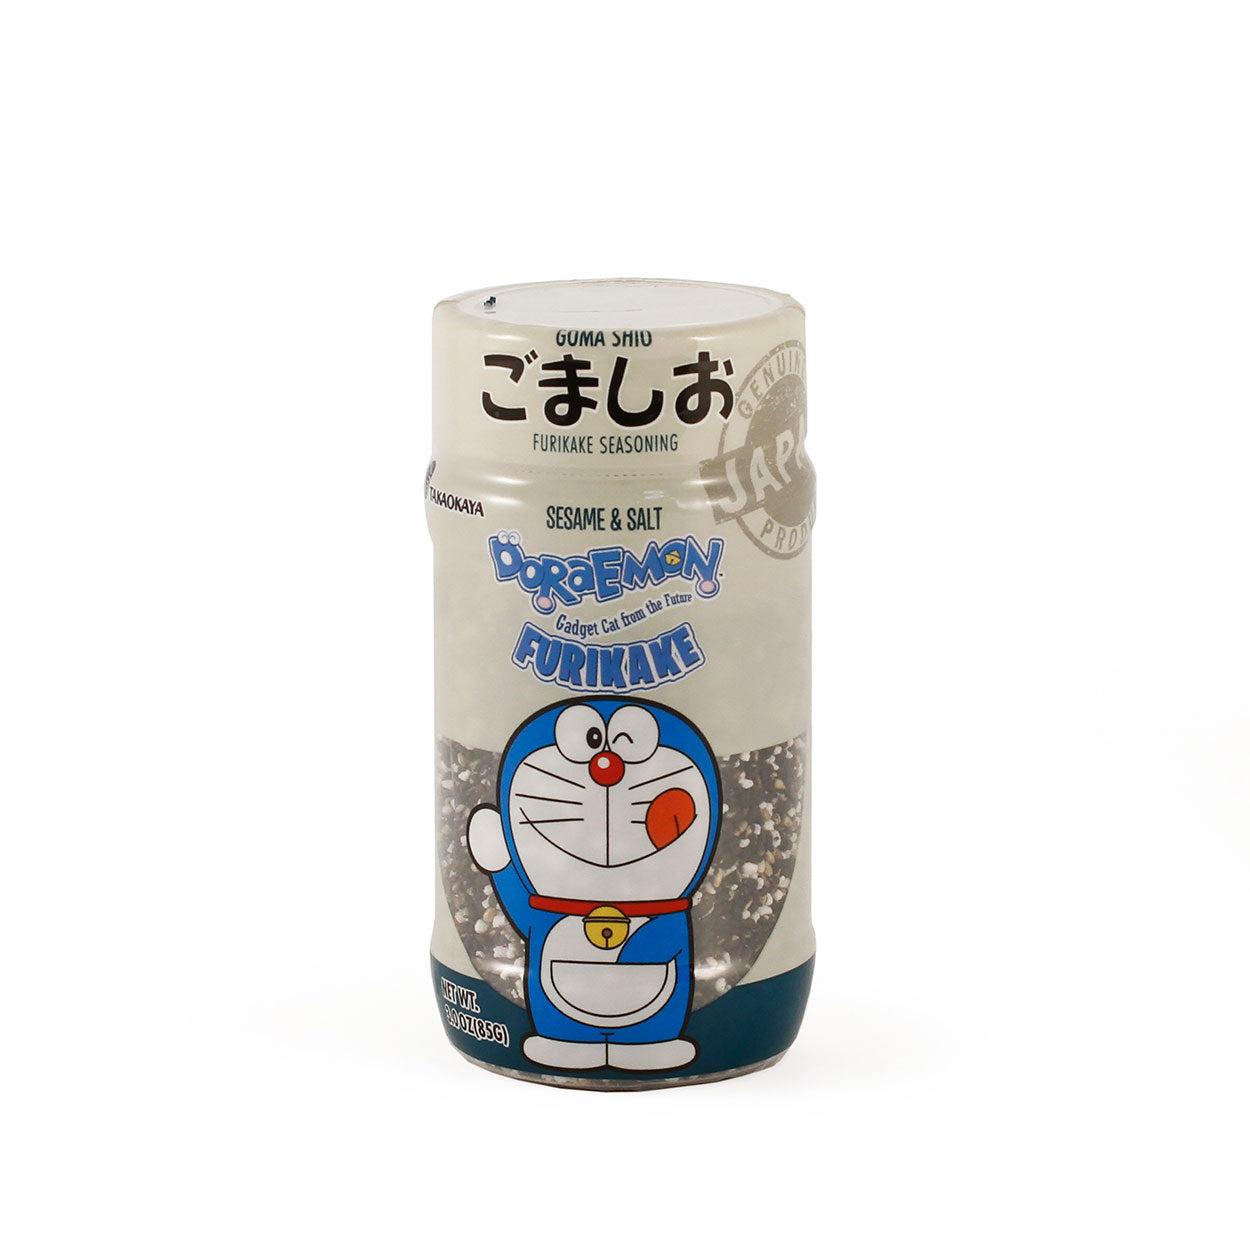 Takaokaya Furikake Roasted Black Sesame and Salt (Goma Shio) 2.99oz / 85g